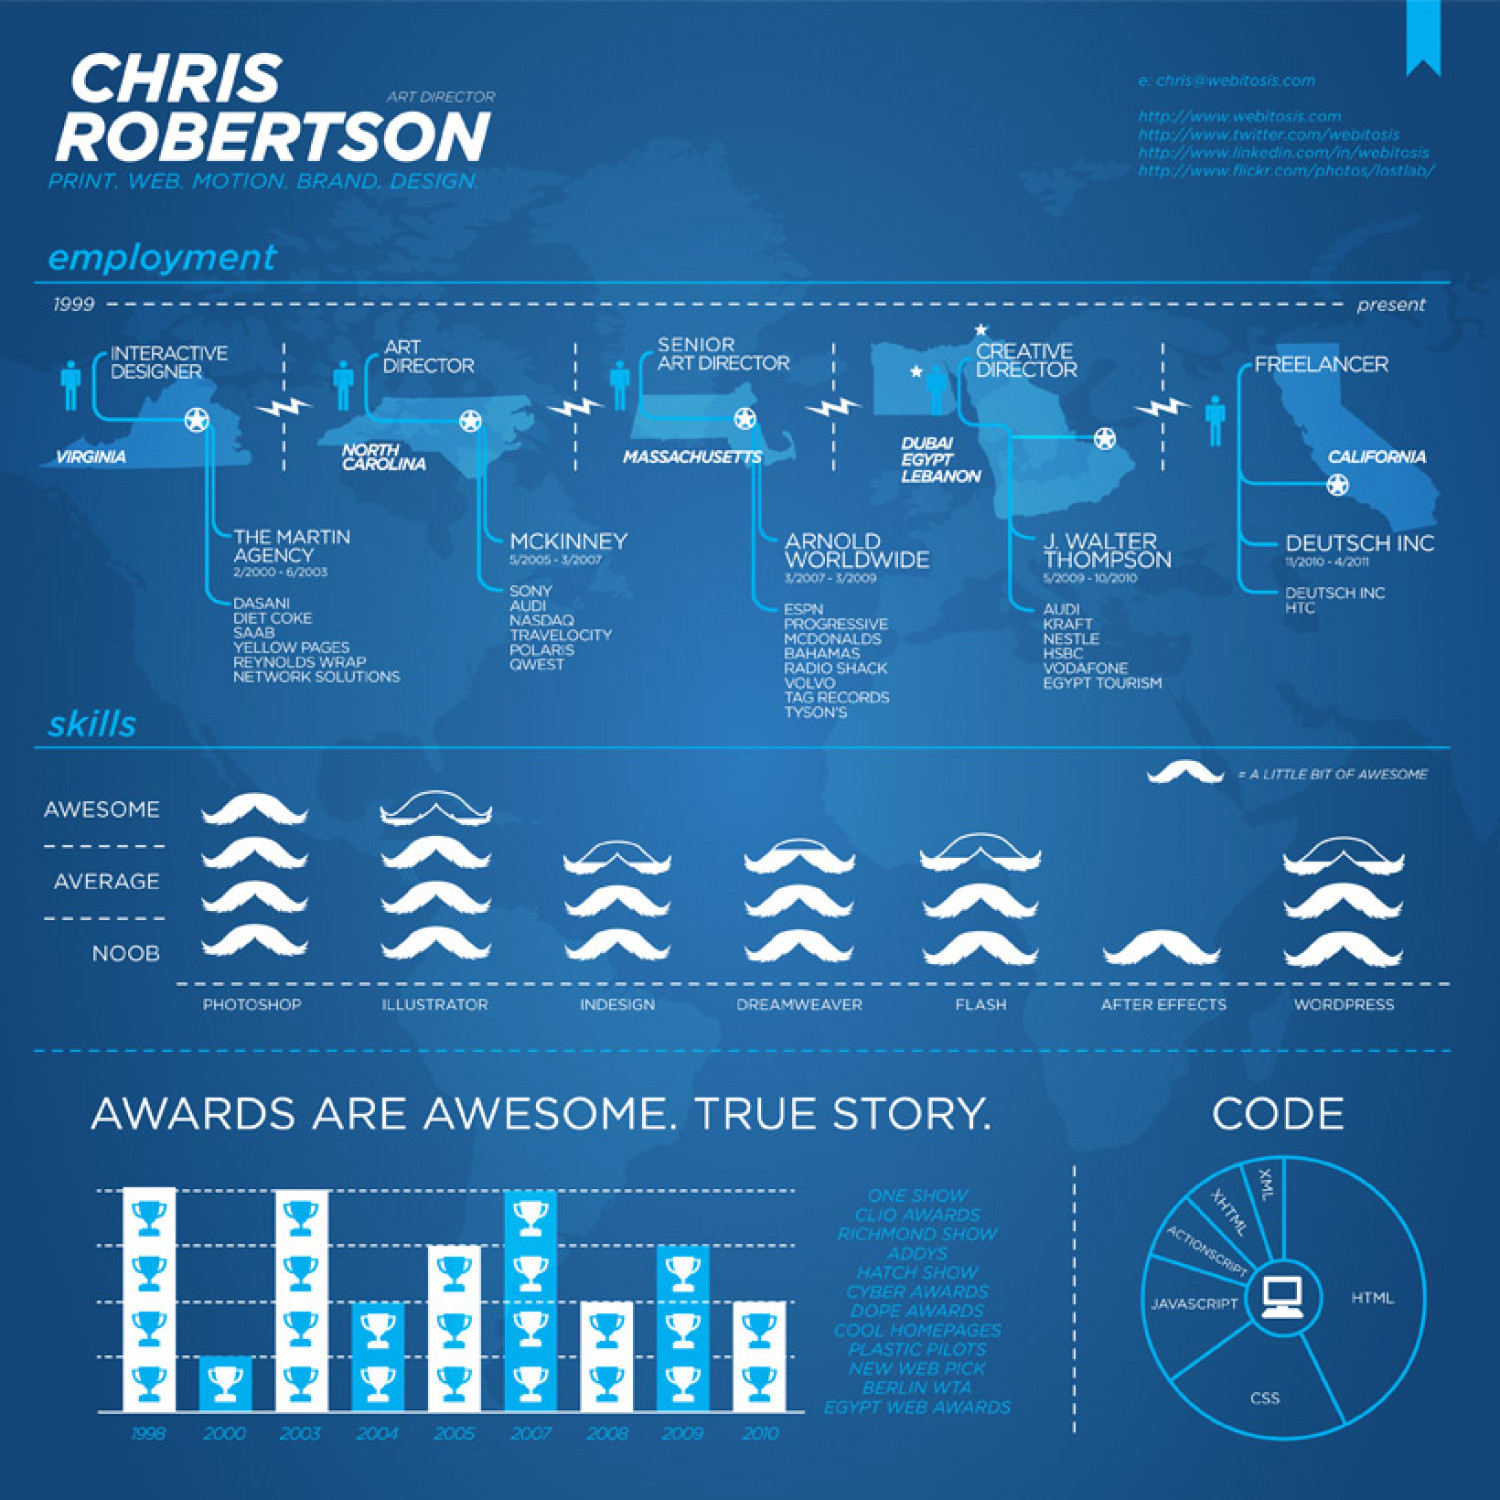 Infographic Resume-Chris Robertson Infographic